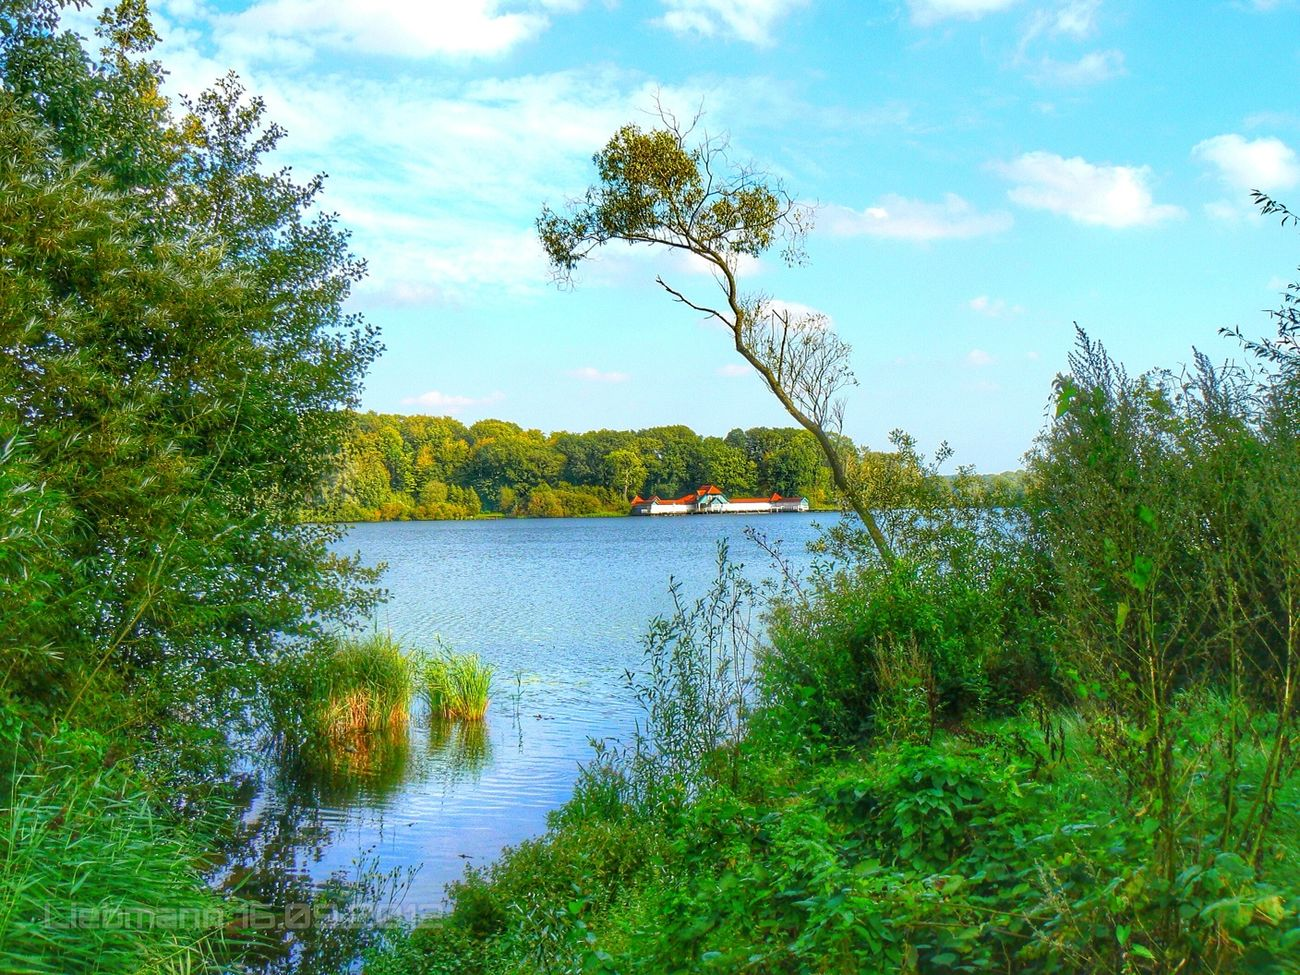 Landscape Relaxing Enjoying The View Water_collection Fresh Scent Lake View